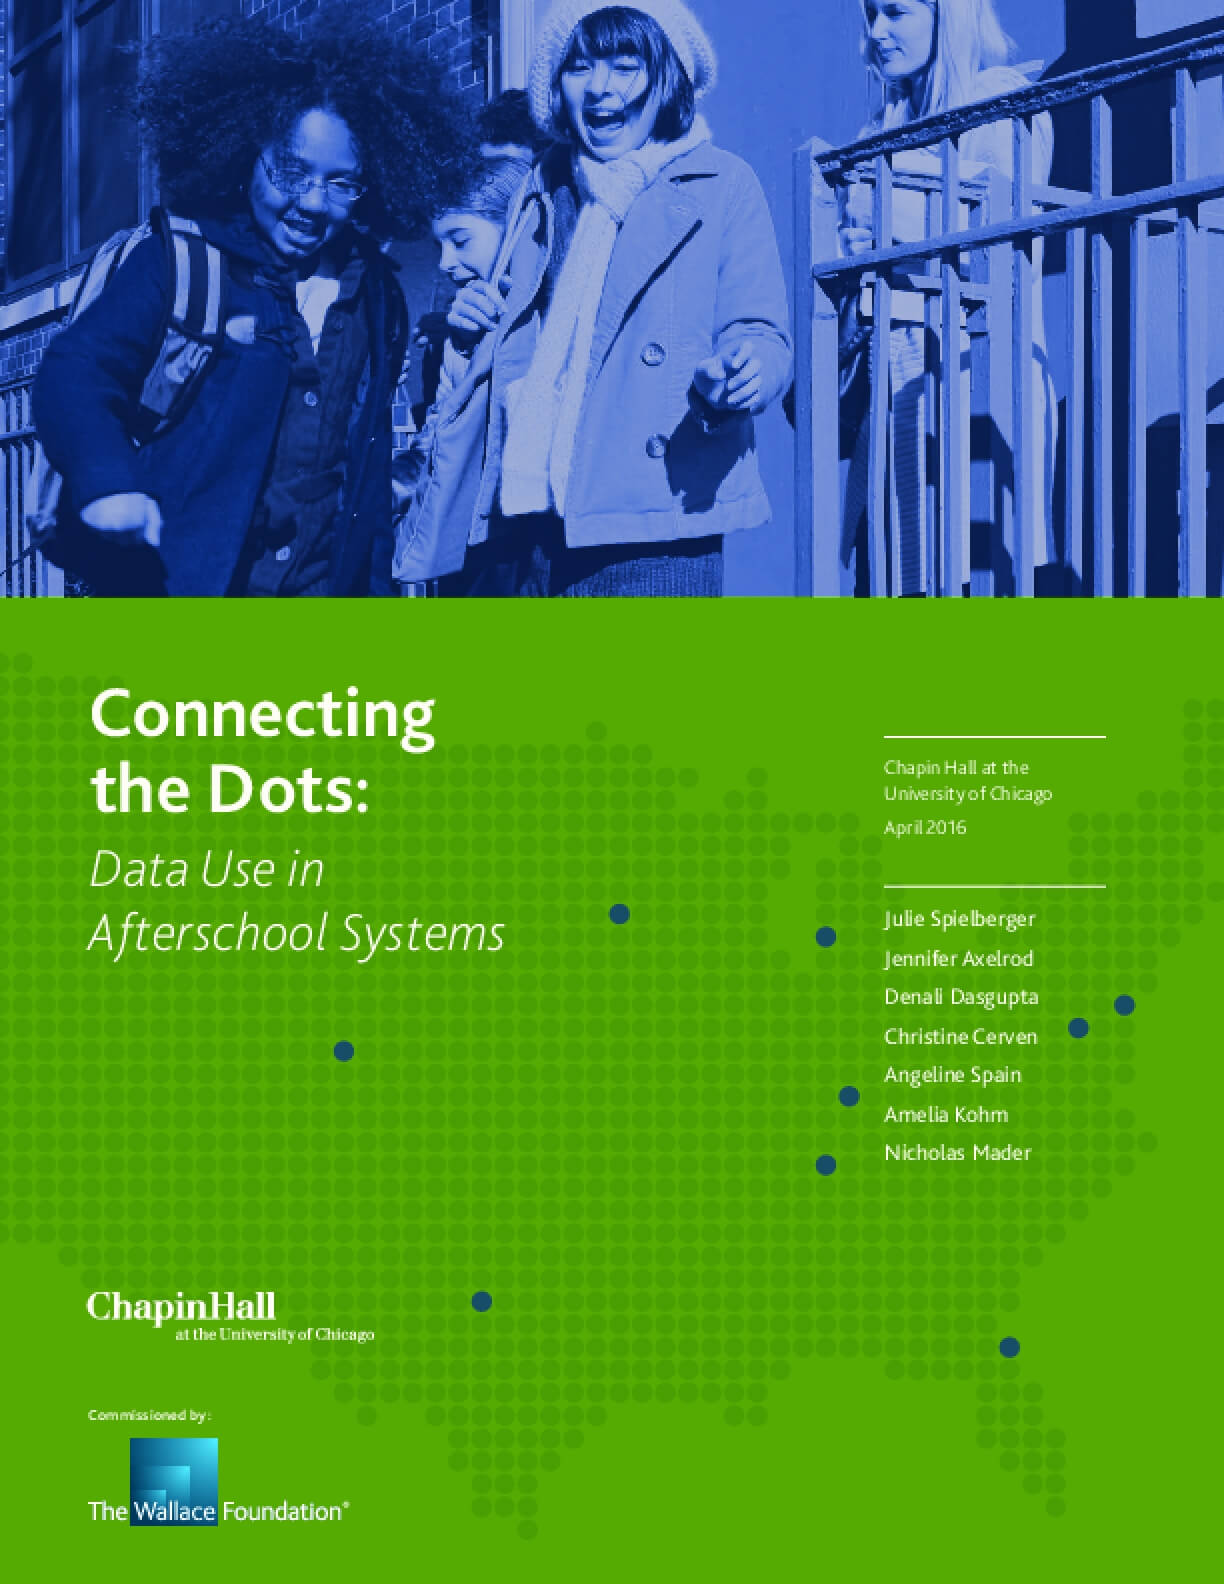 Connecting the Dots: Data Use in Afterschool Systems